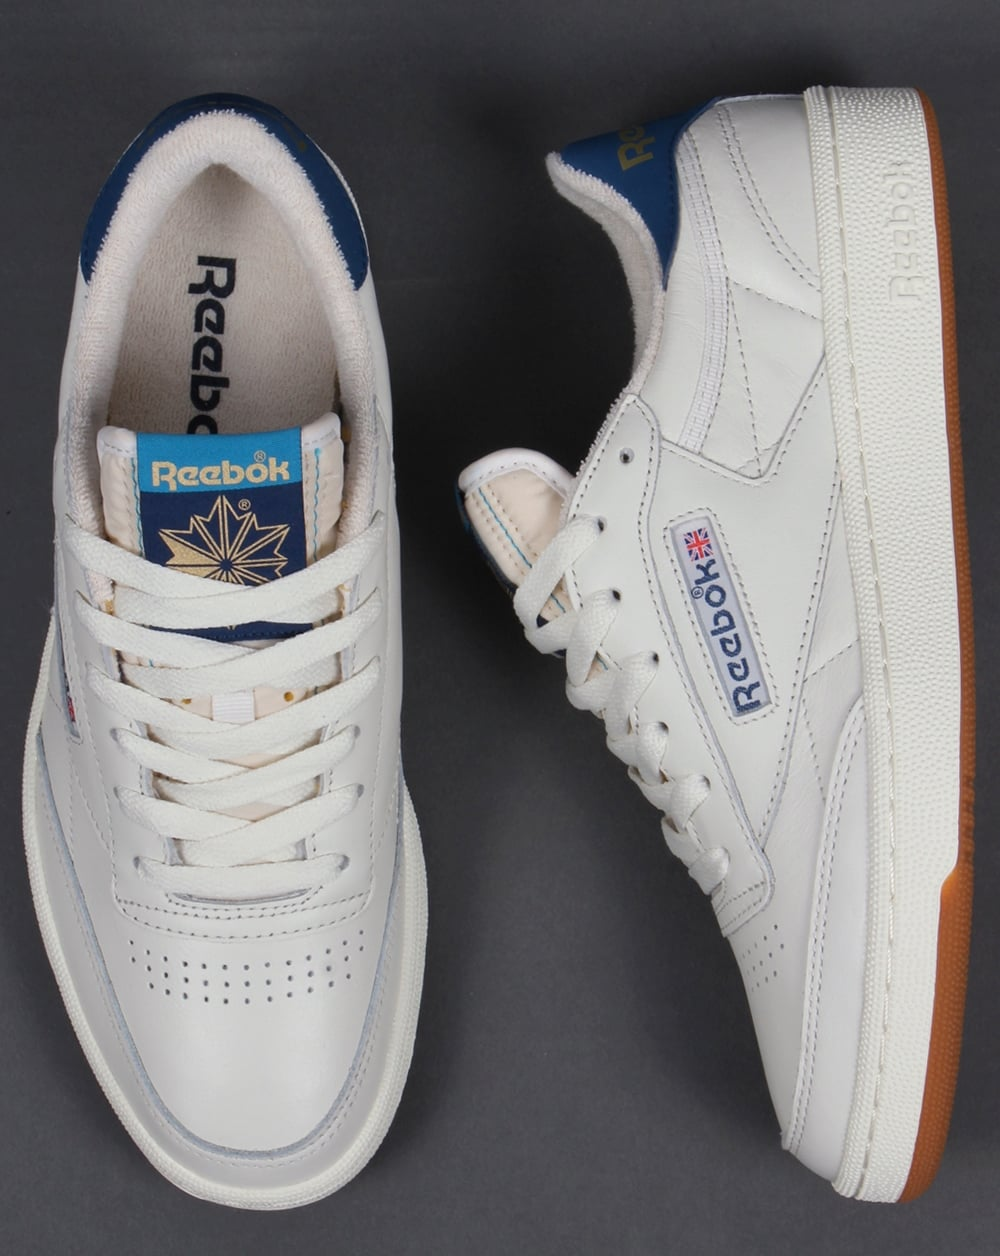 4e47e42d6ede6e Reebok Club 85 Retro Trainers Chalk White Blue